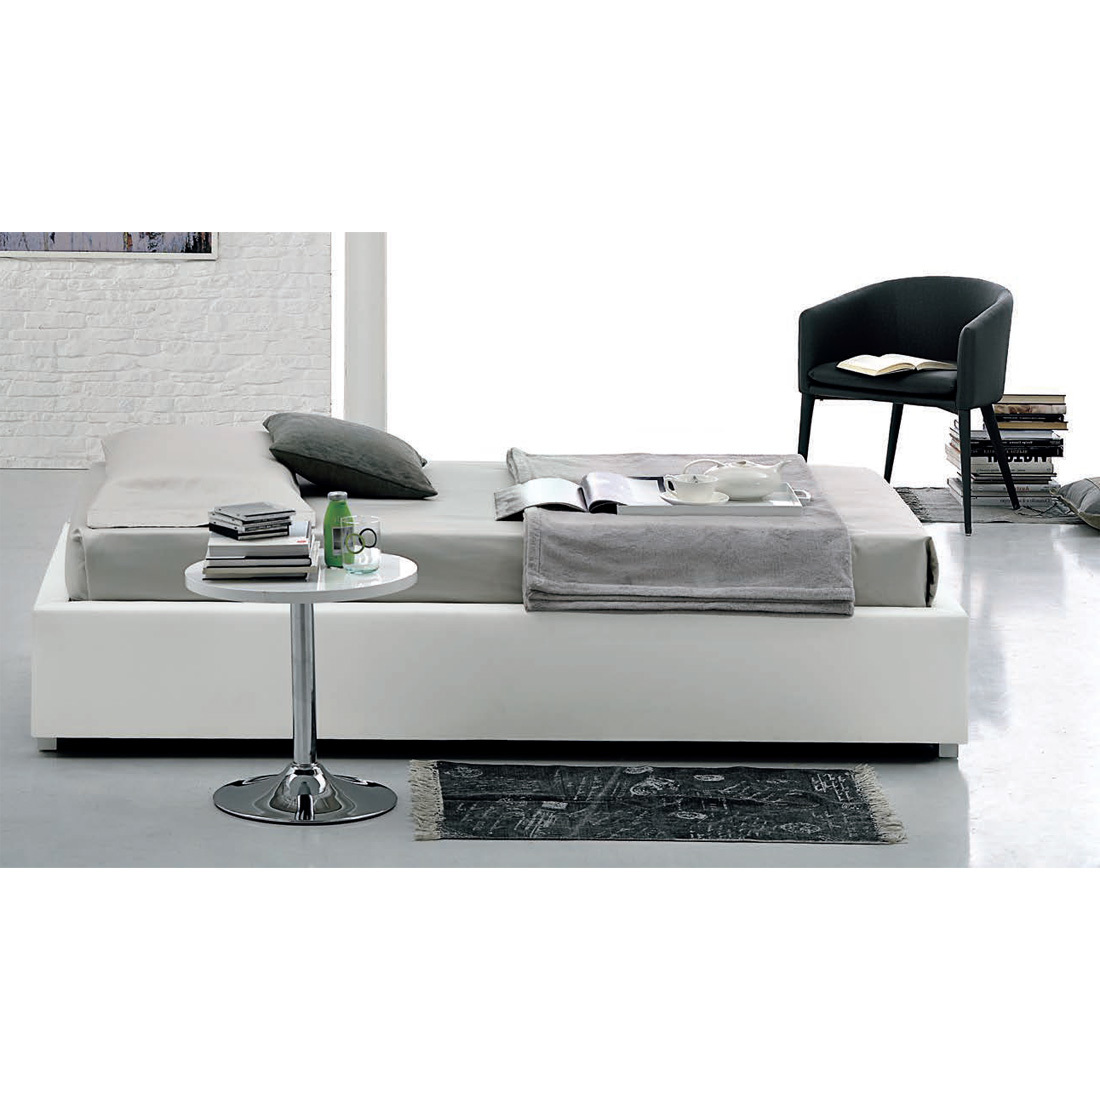 Photos 1: Target Point Single padded bed SD451 - SOMMIER